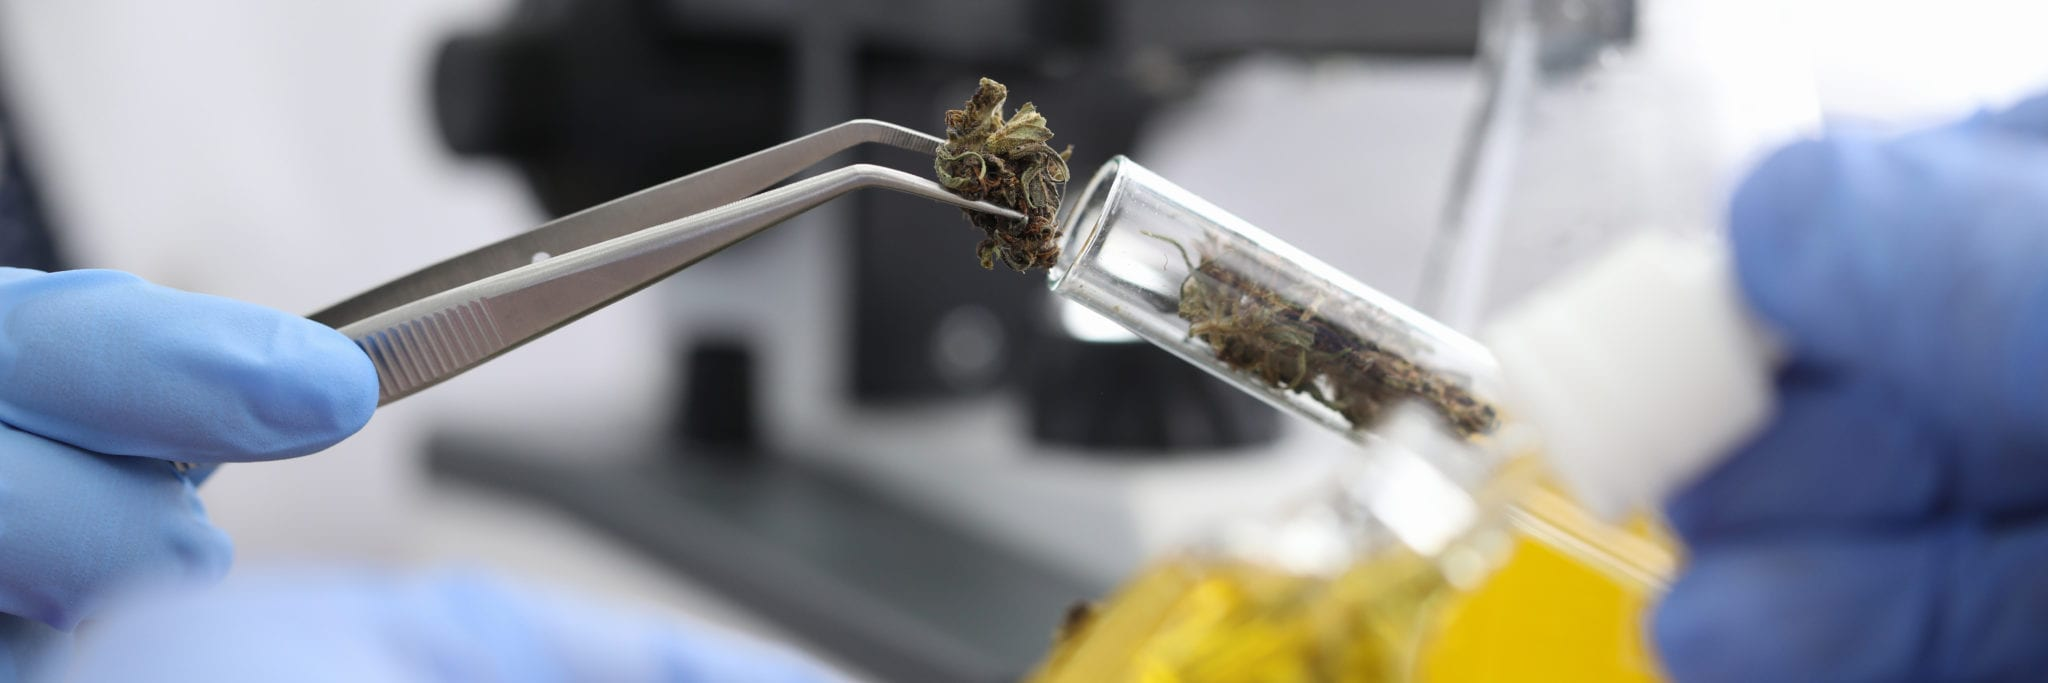 Health Canada requests public feedback on amending various strict pot rules